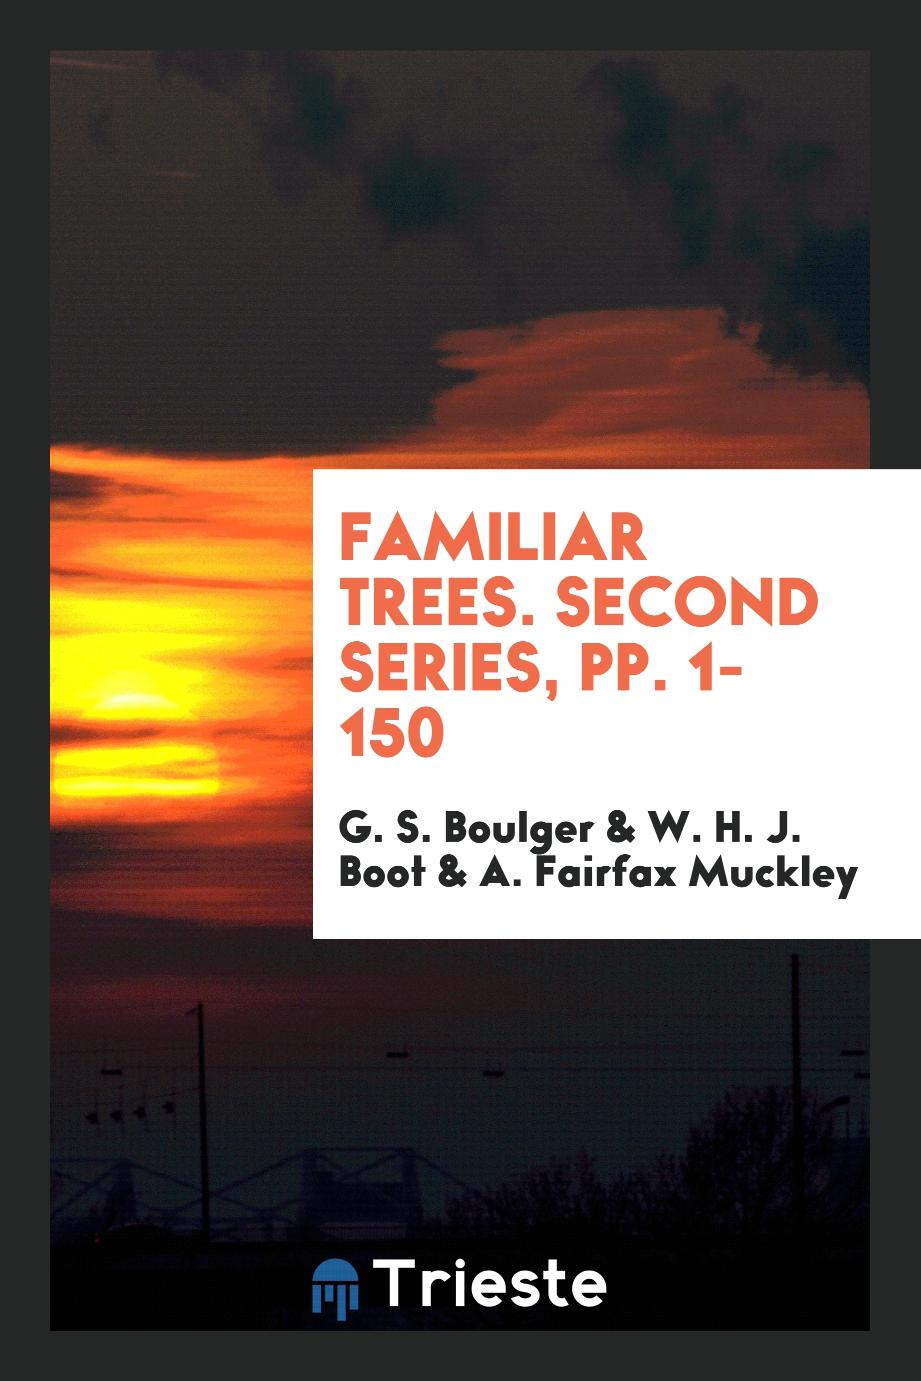 Familiar Trees. Second Series, pp. 1-150